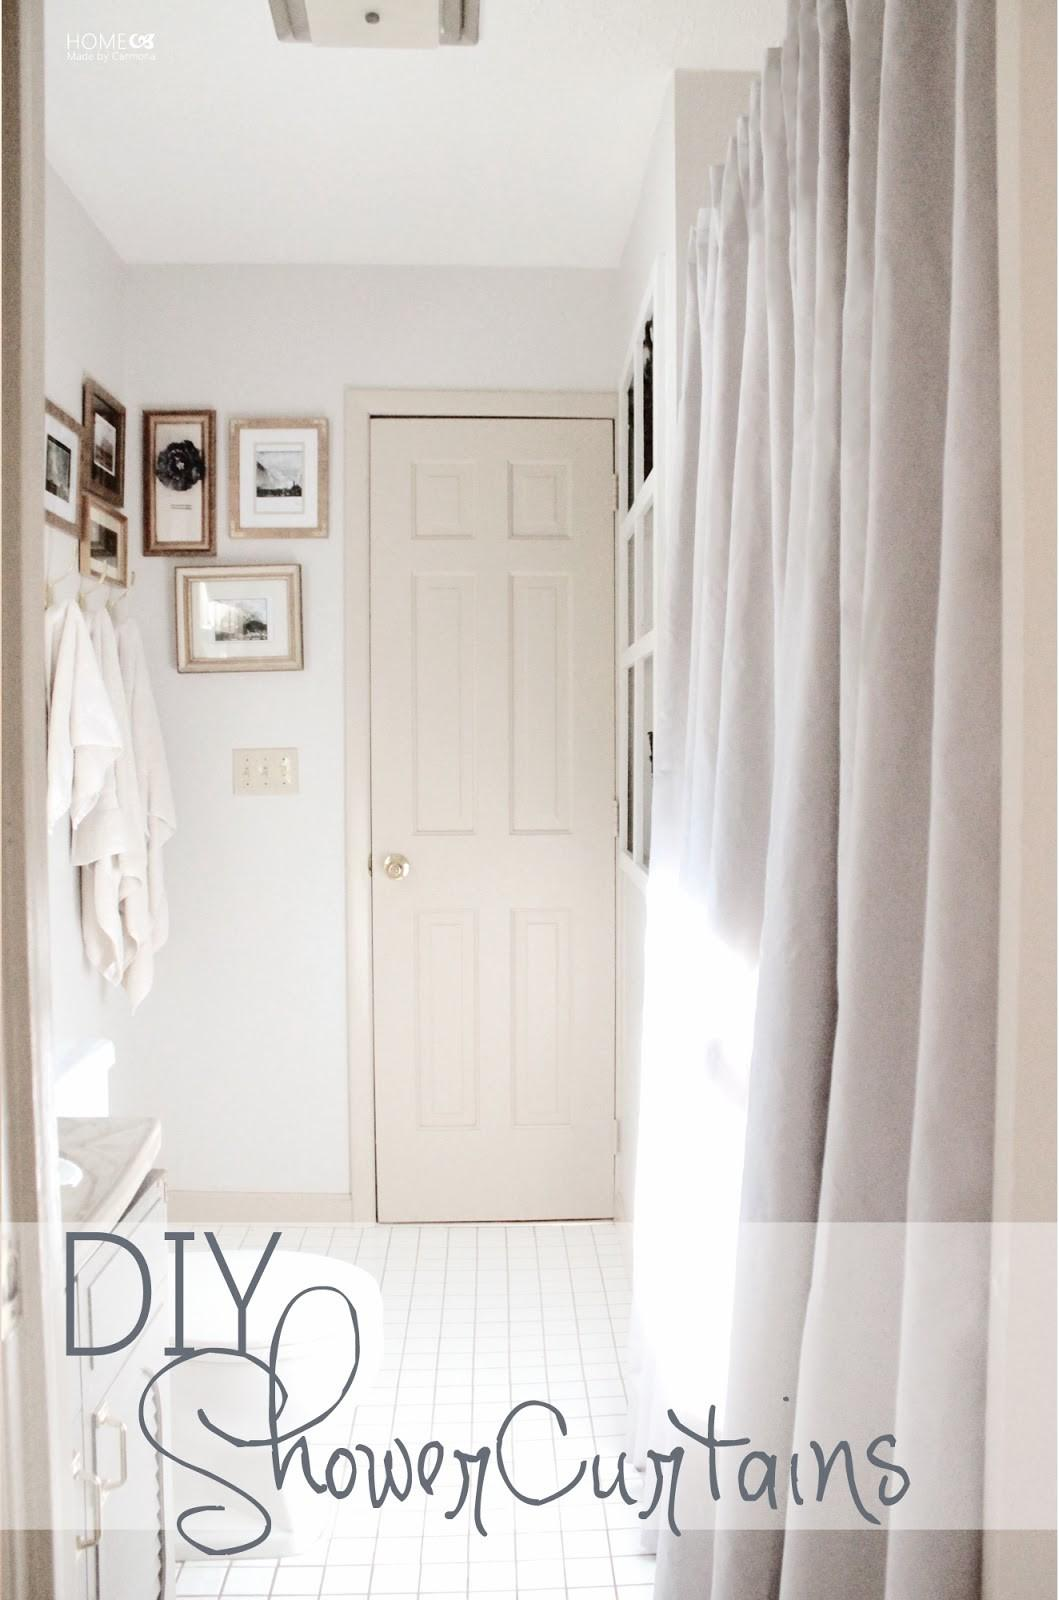 Take Pros Along Way Diy Curtains